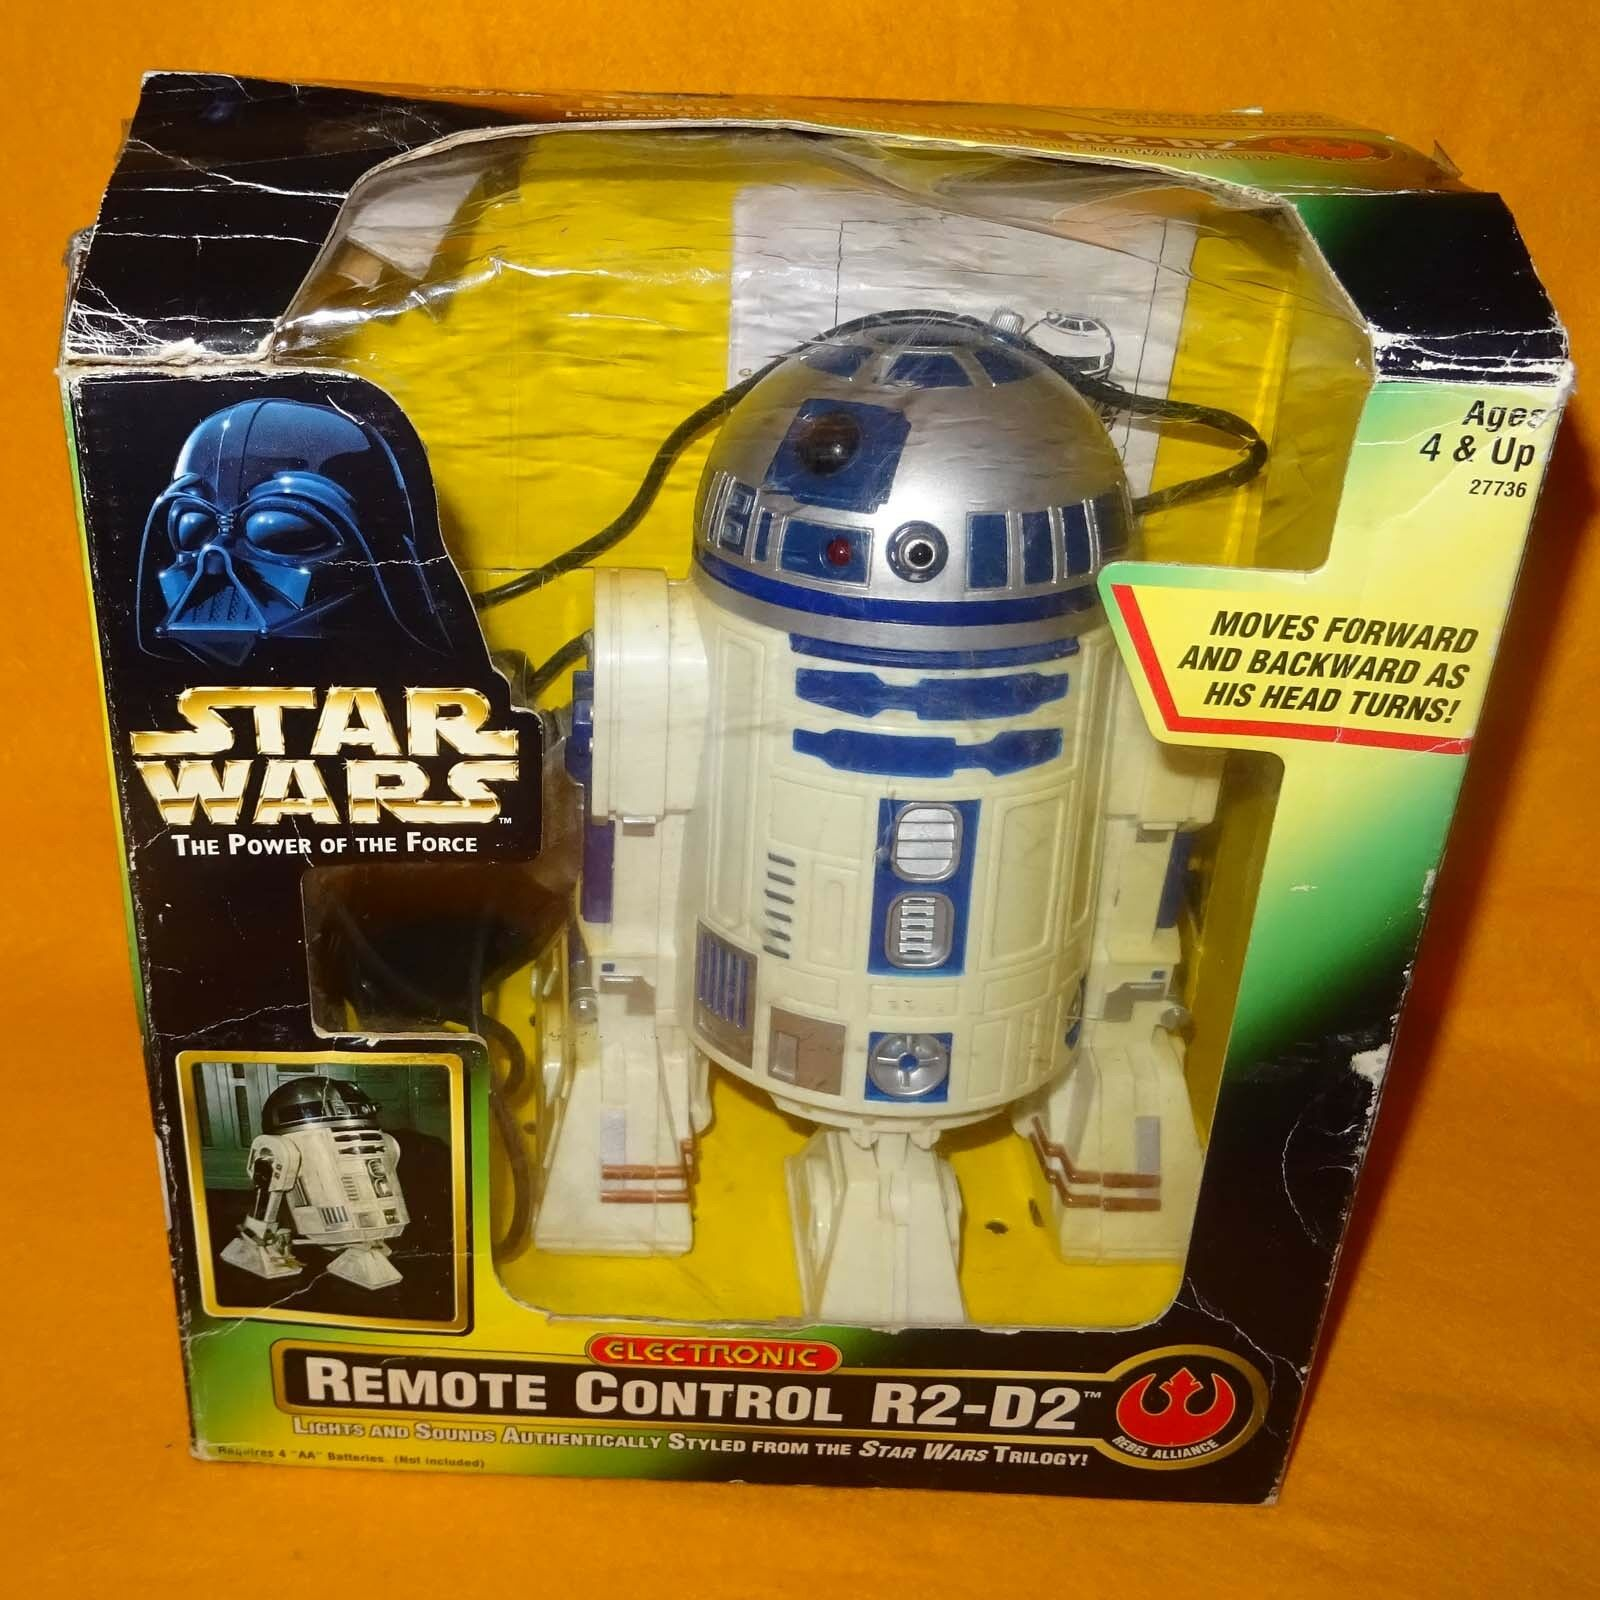 HASBRO KENNER STAR WARS POWER OF THE FORCE POTF ELECTRONIC REMOTE CONTROL R2-D2